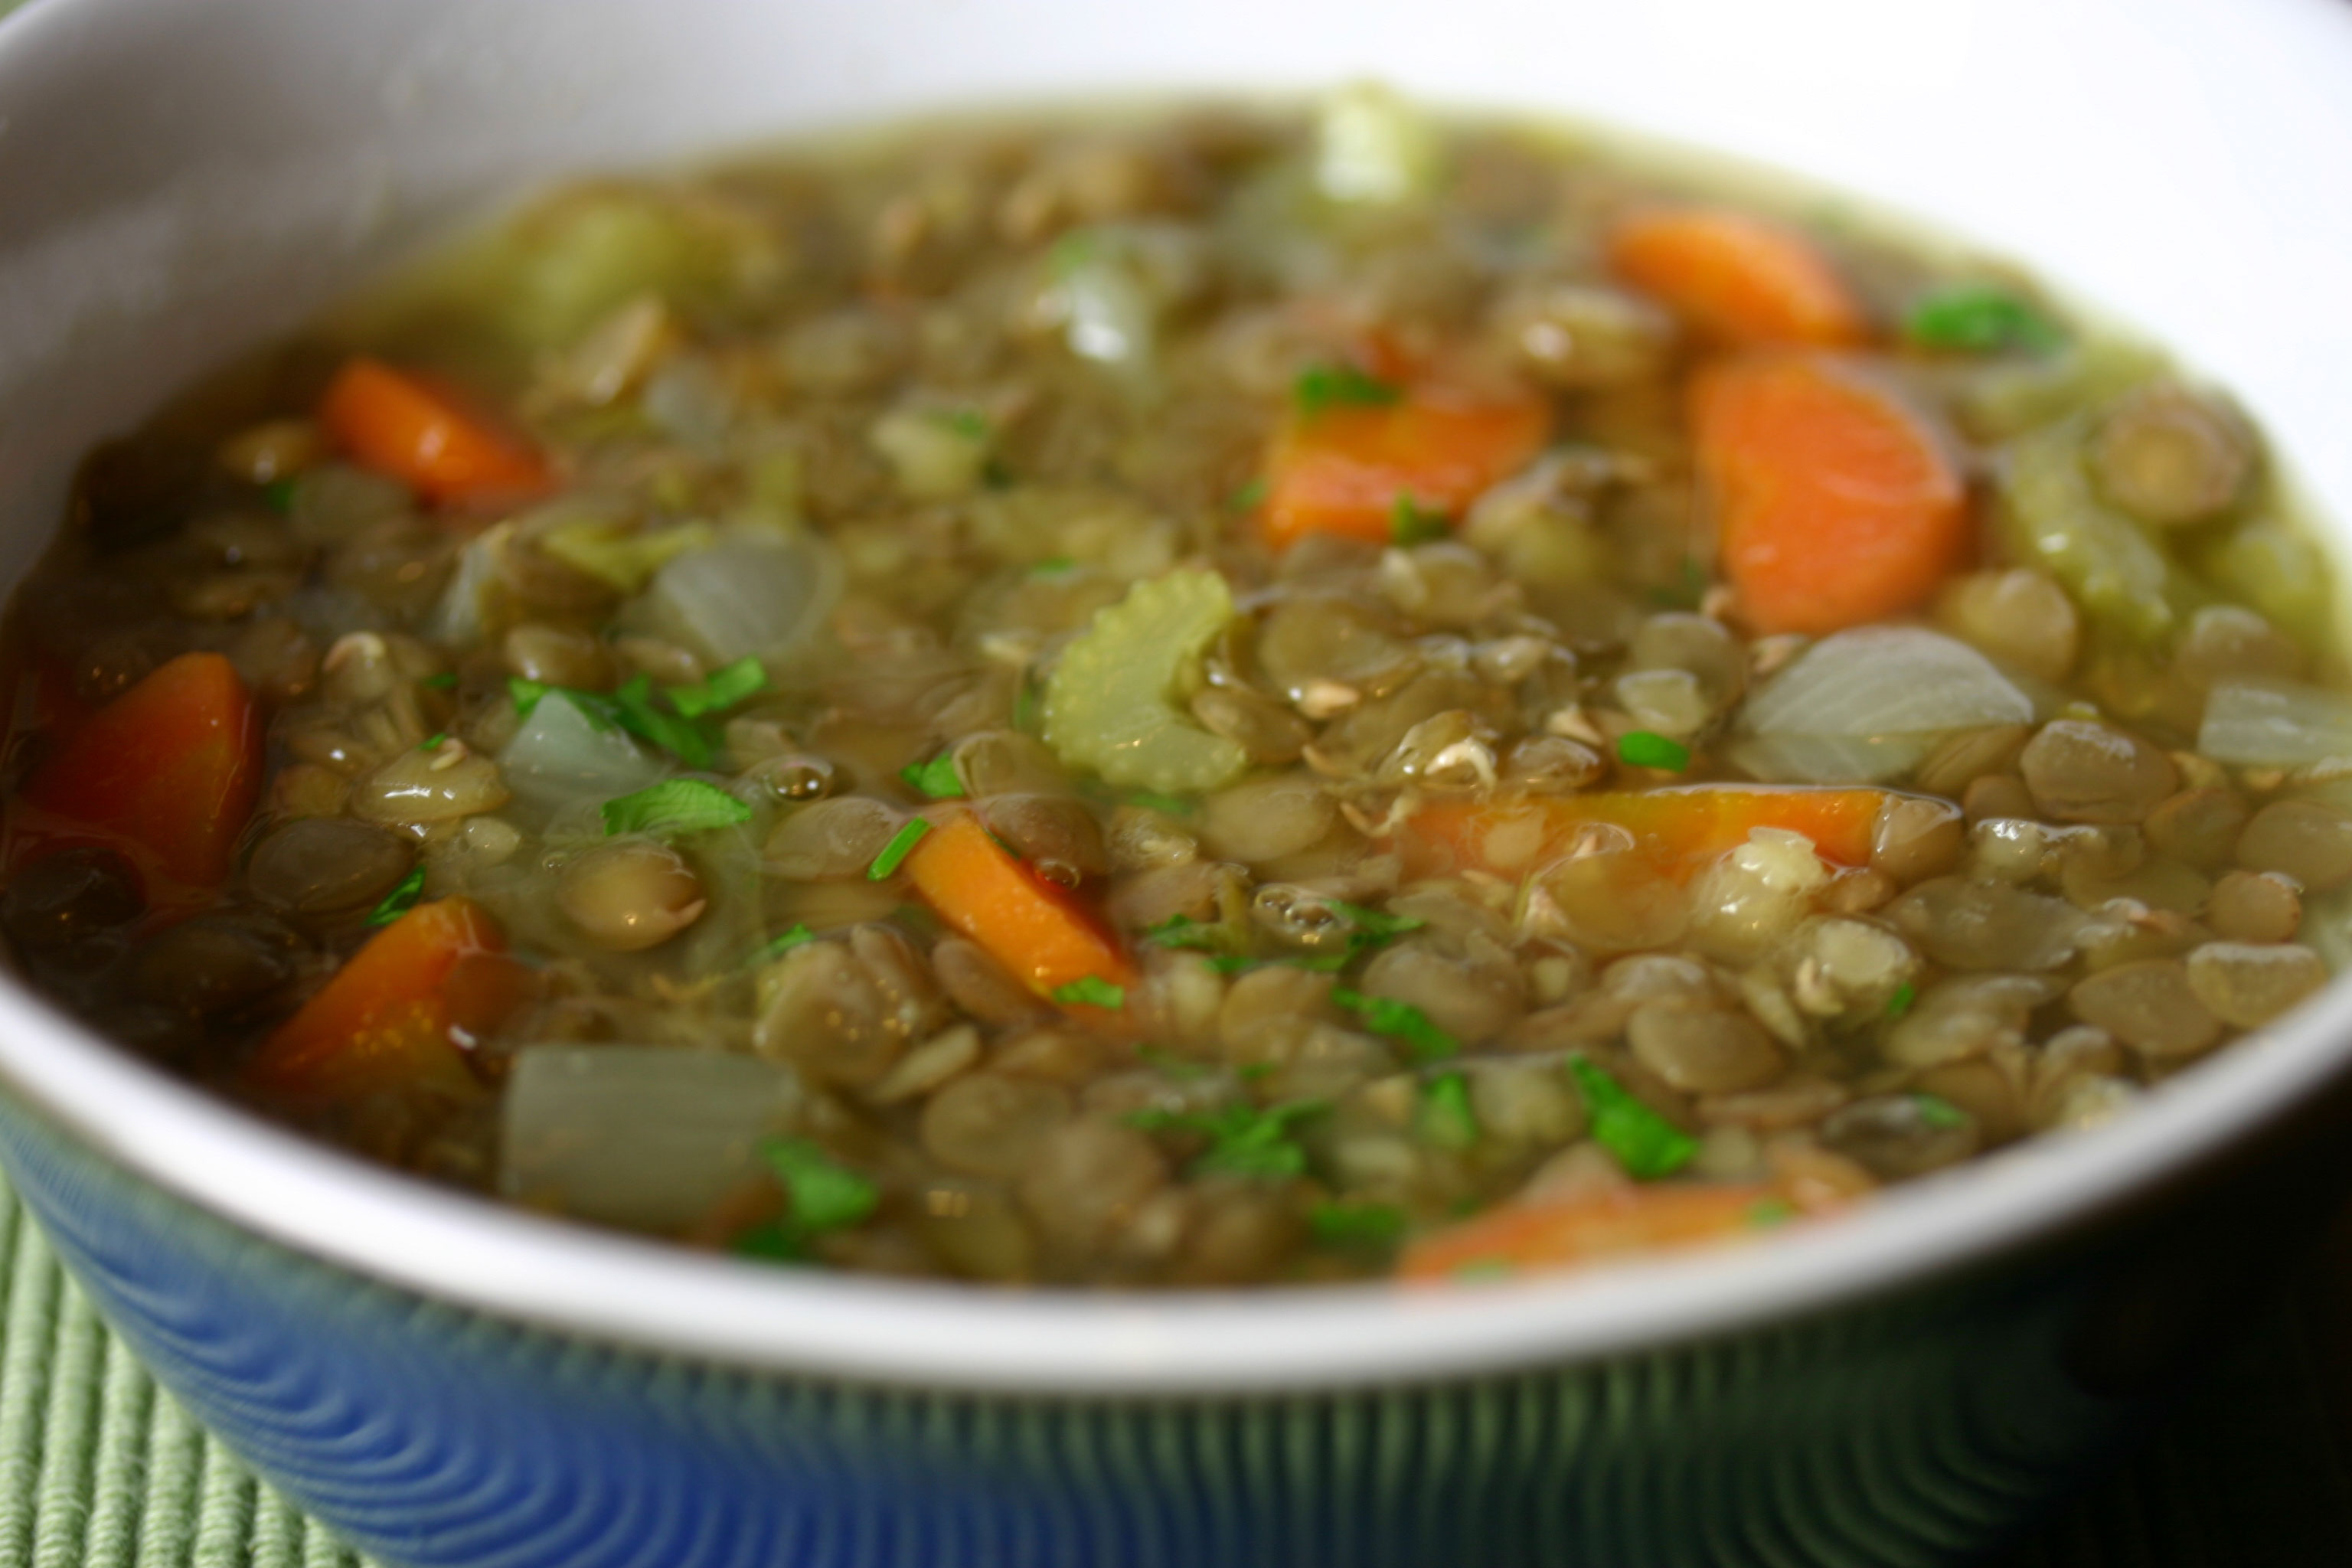 ... find myself craving things like this green lentil soup for supper